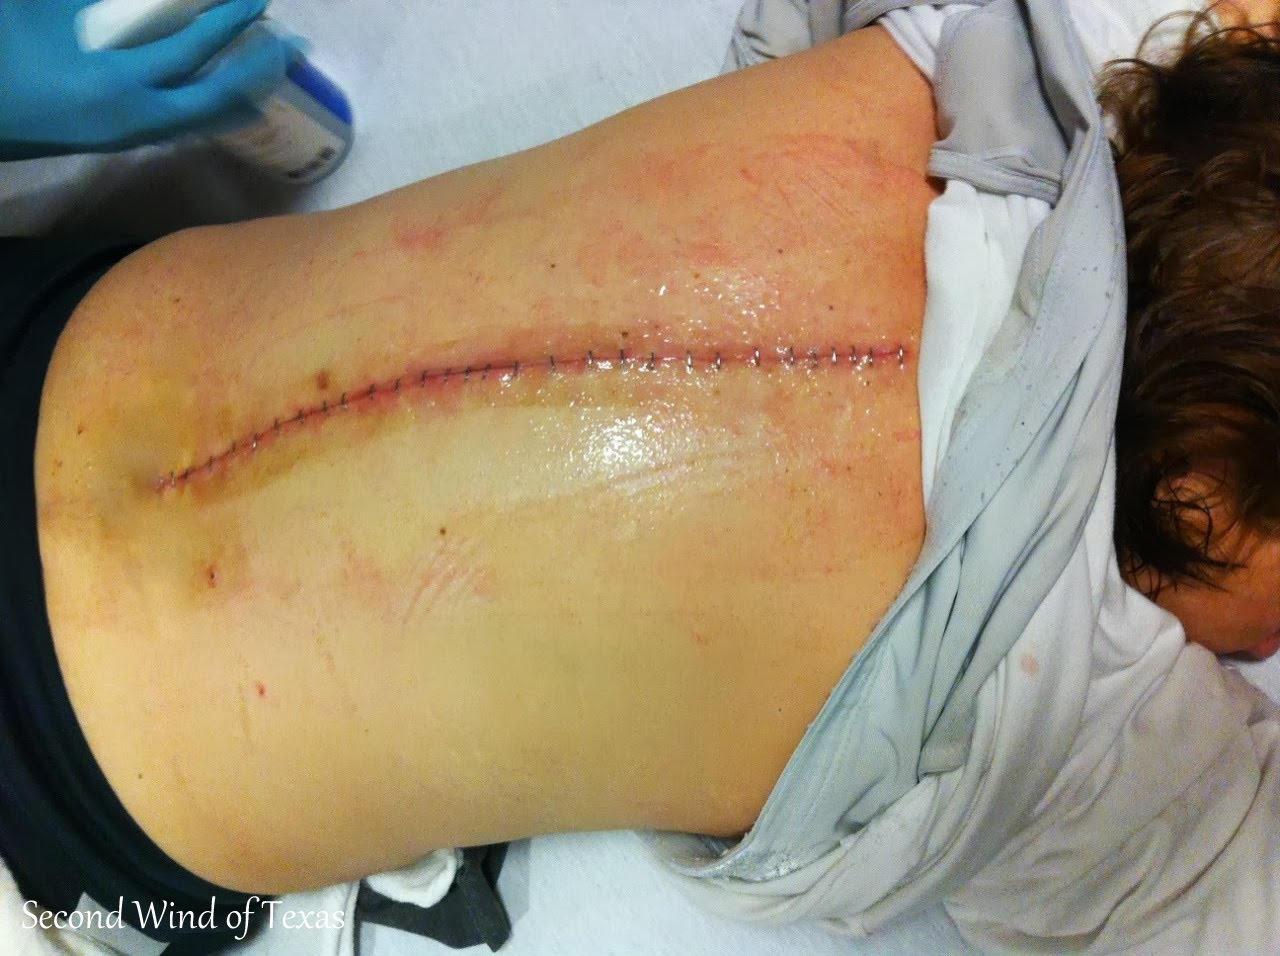 how to break down scar tissue after surgery